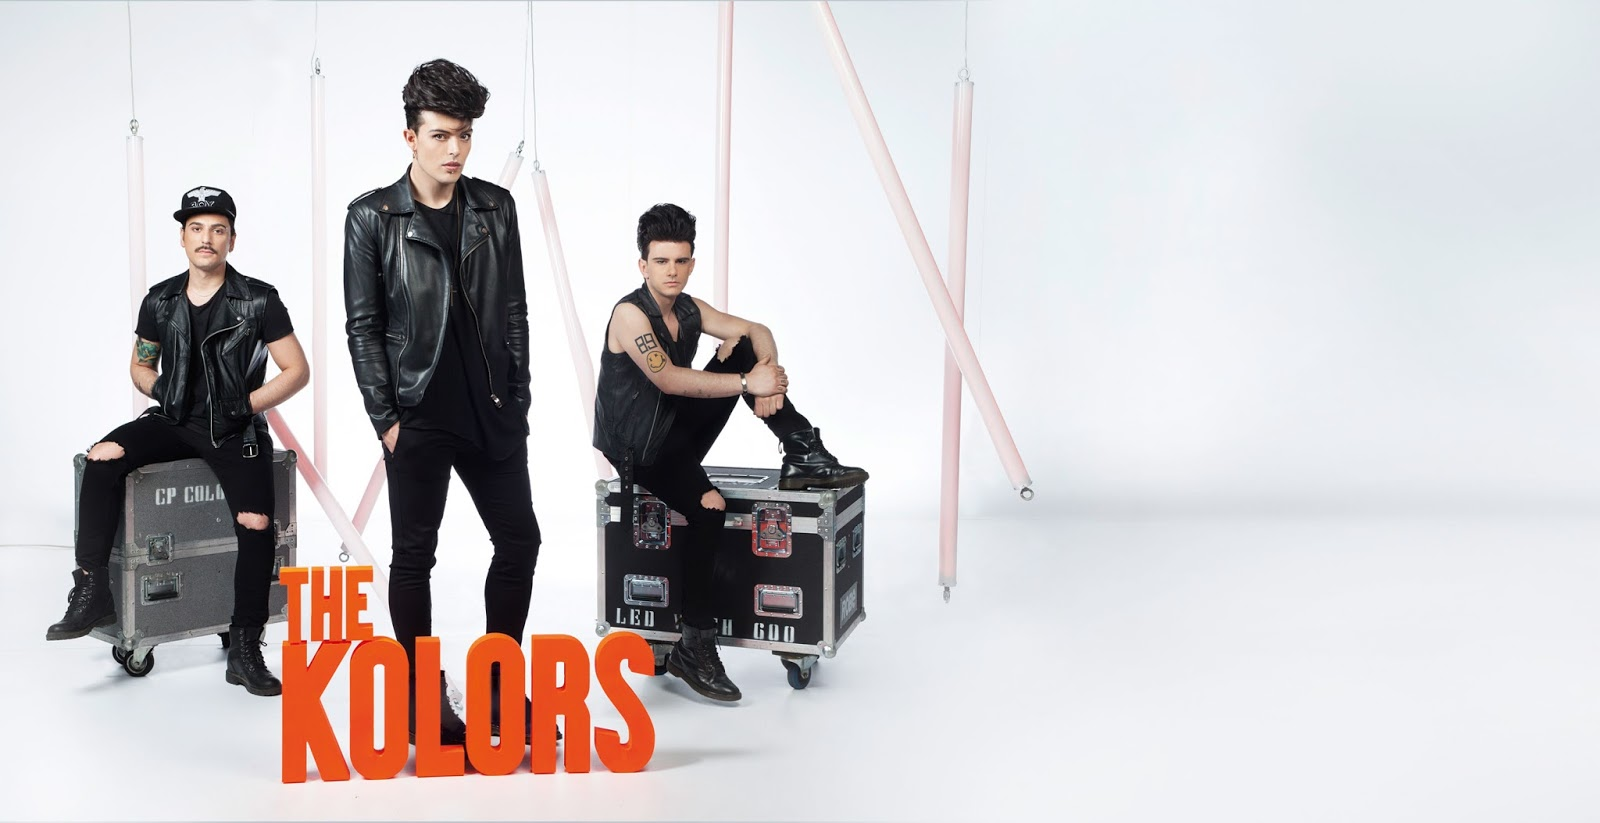 My Queen - The Kolors: testo, video e traduzione